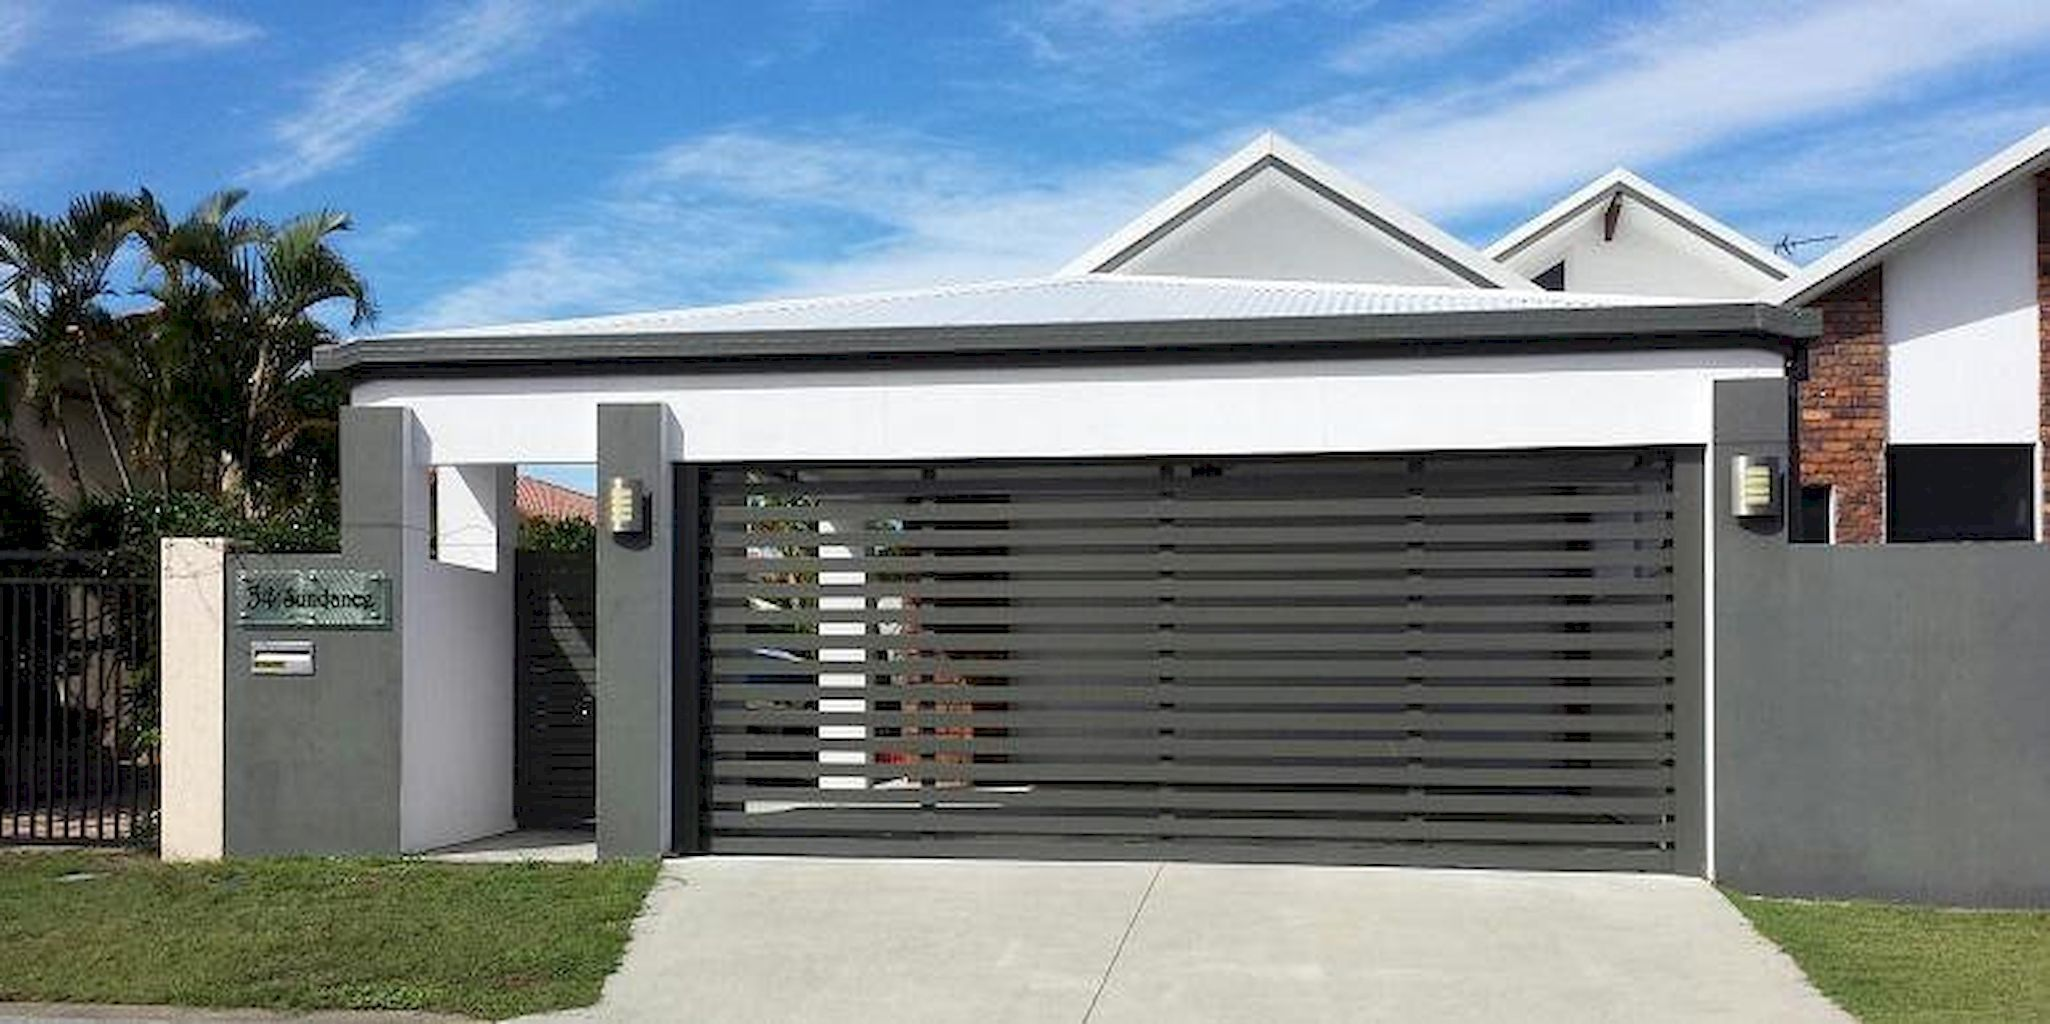 55 adorable modern carports garage designs ideas modern for The style garage